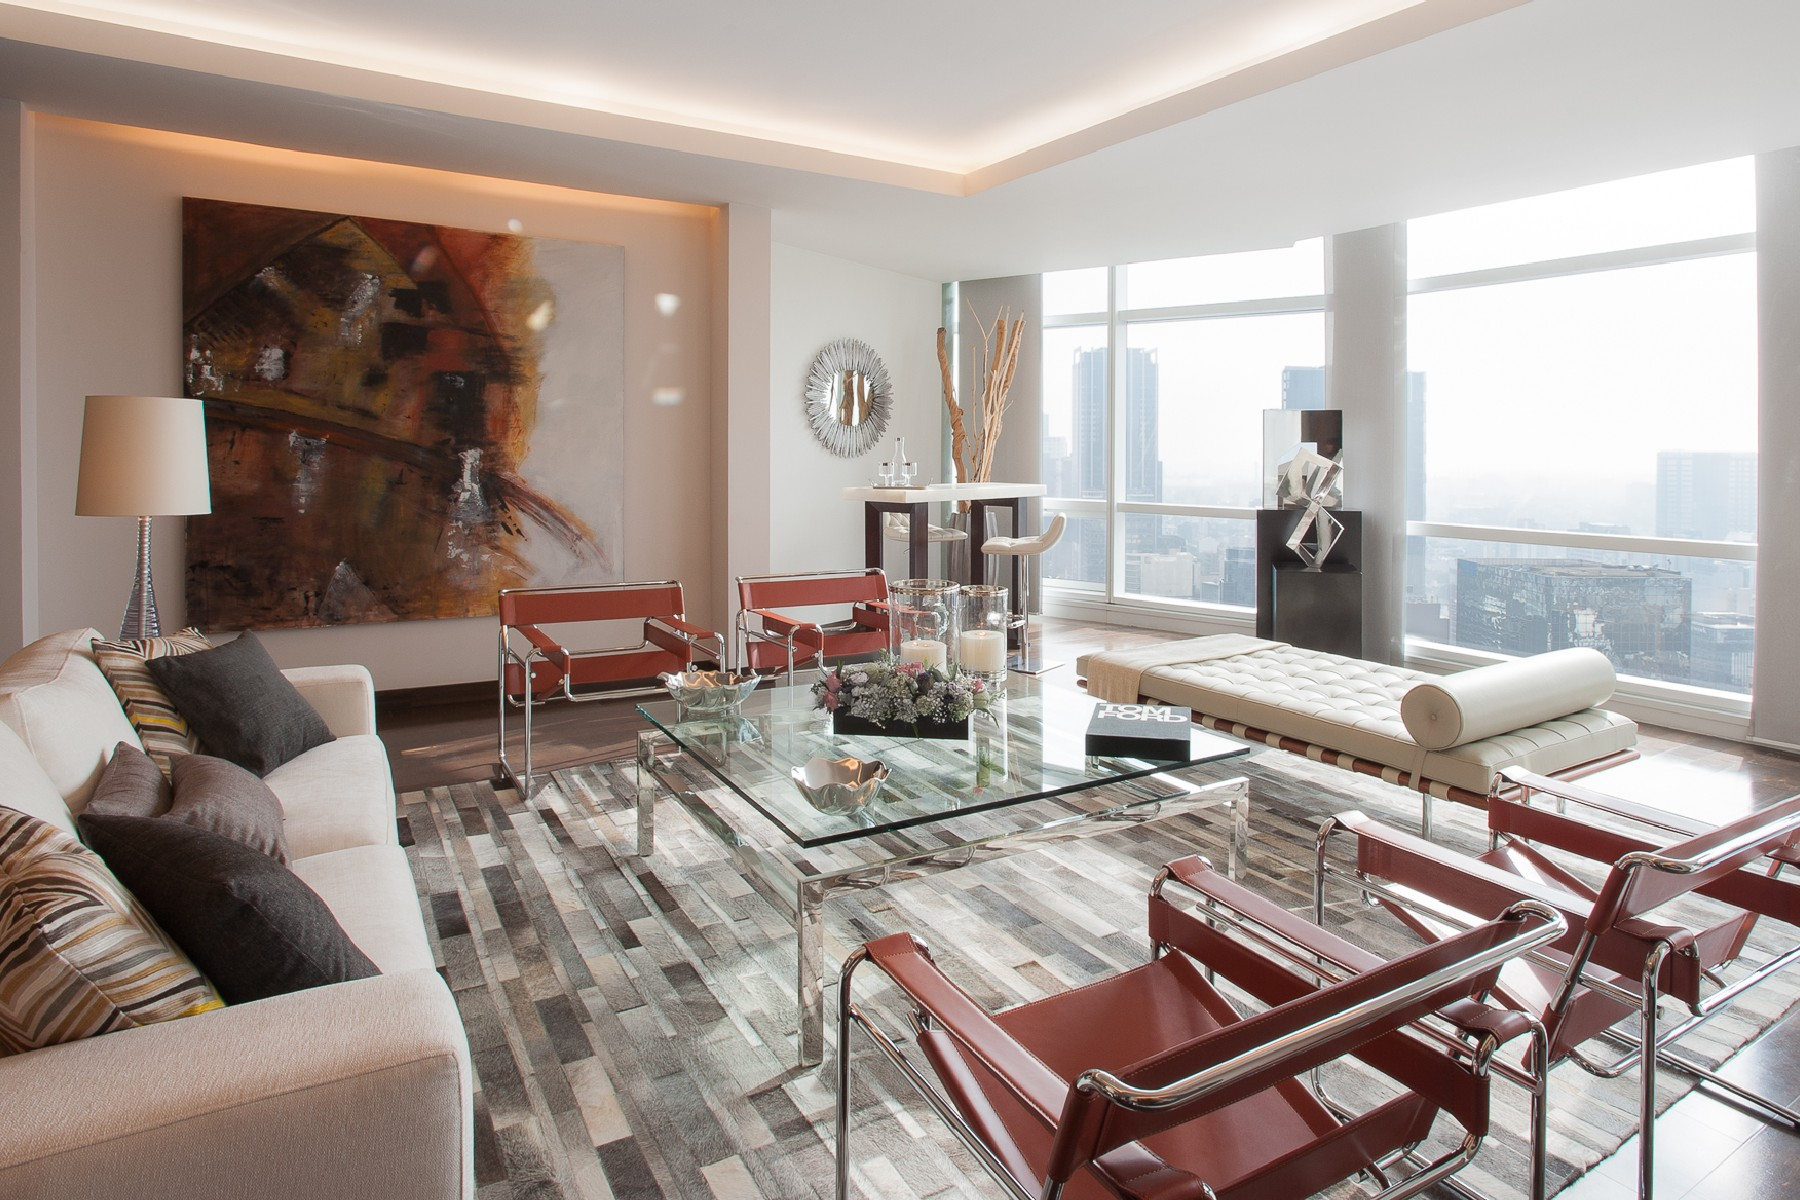 Apartment for Sale at Pent House St. Regis Residence , Mexico City Av. Paseo de la Reforma 439 St. Regis Residences Federal District, 06500 Mexico